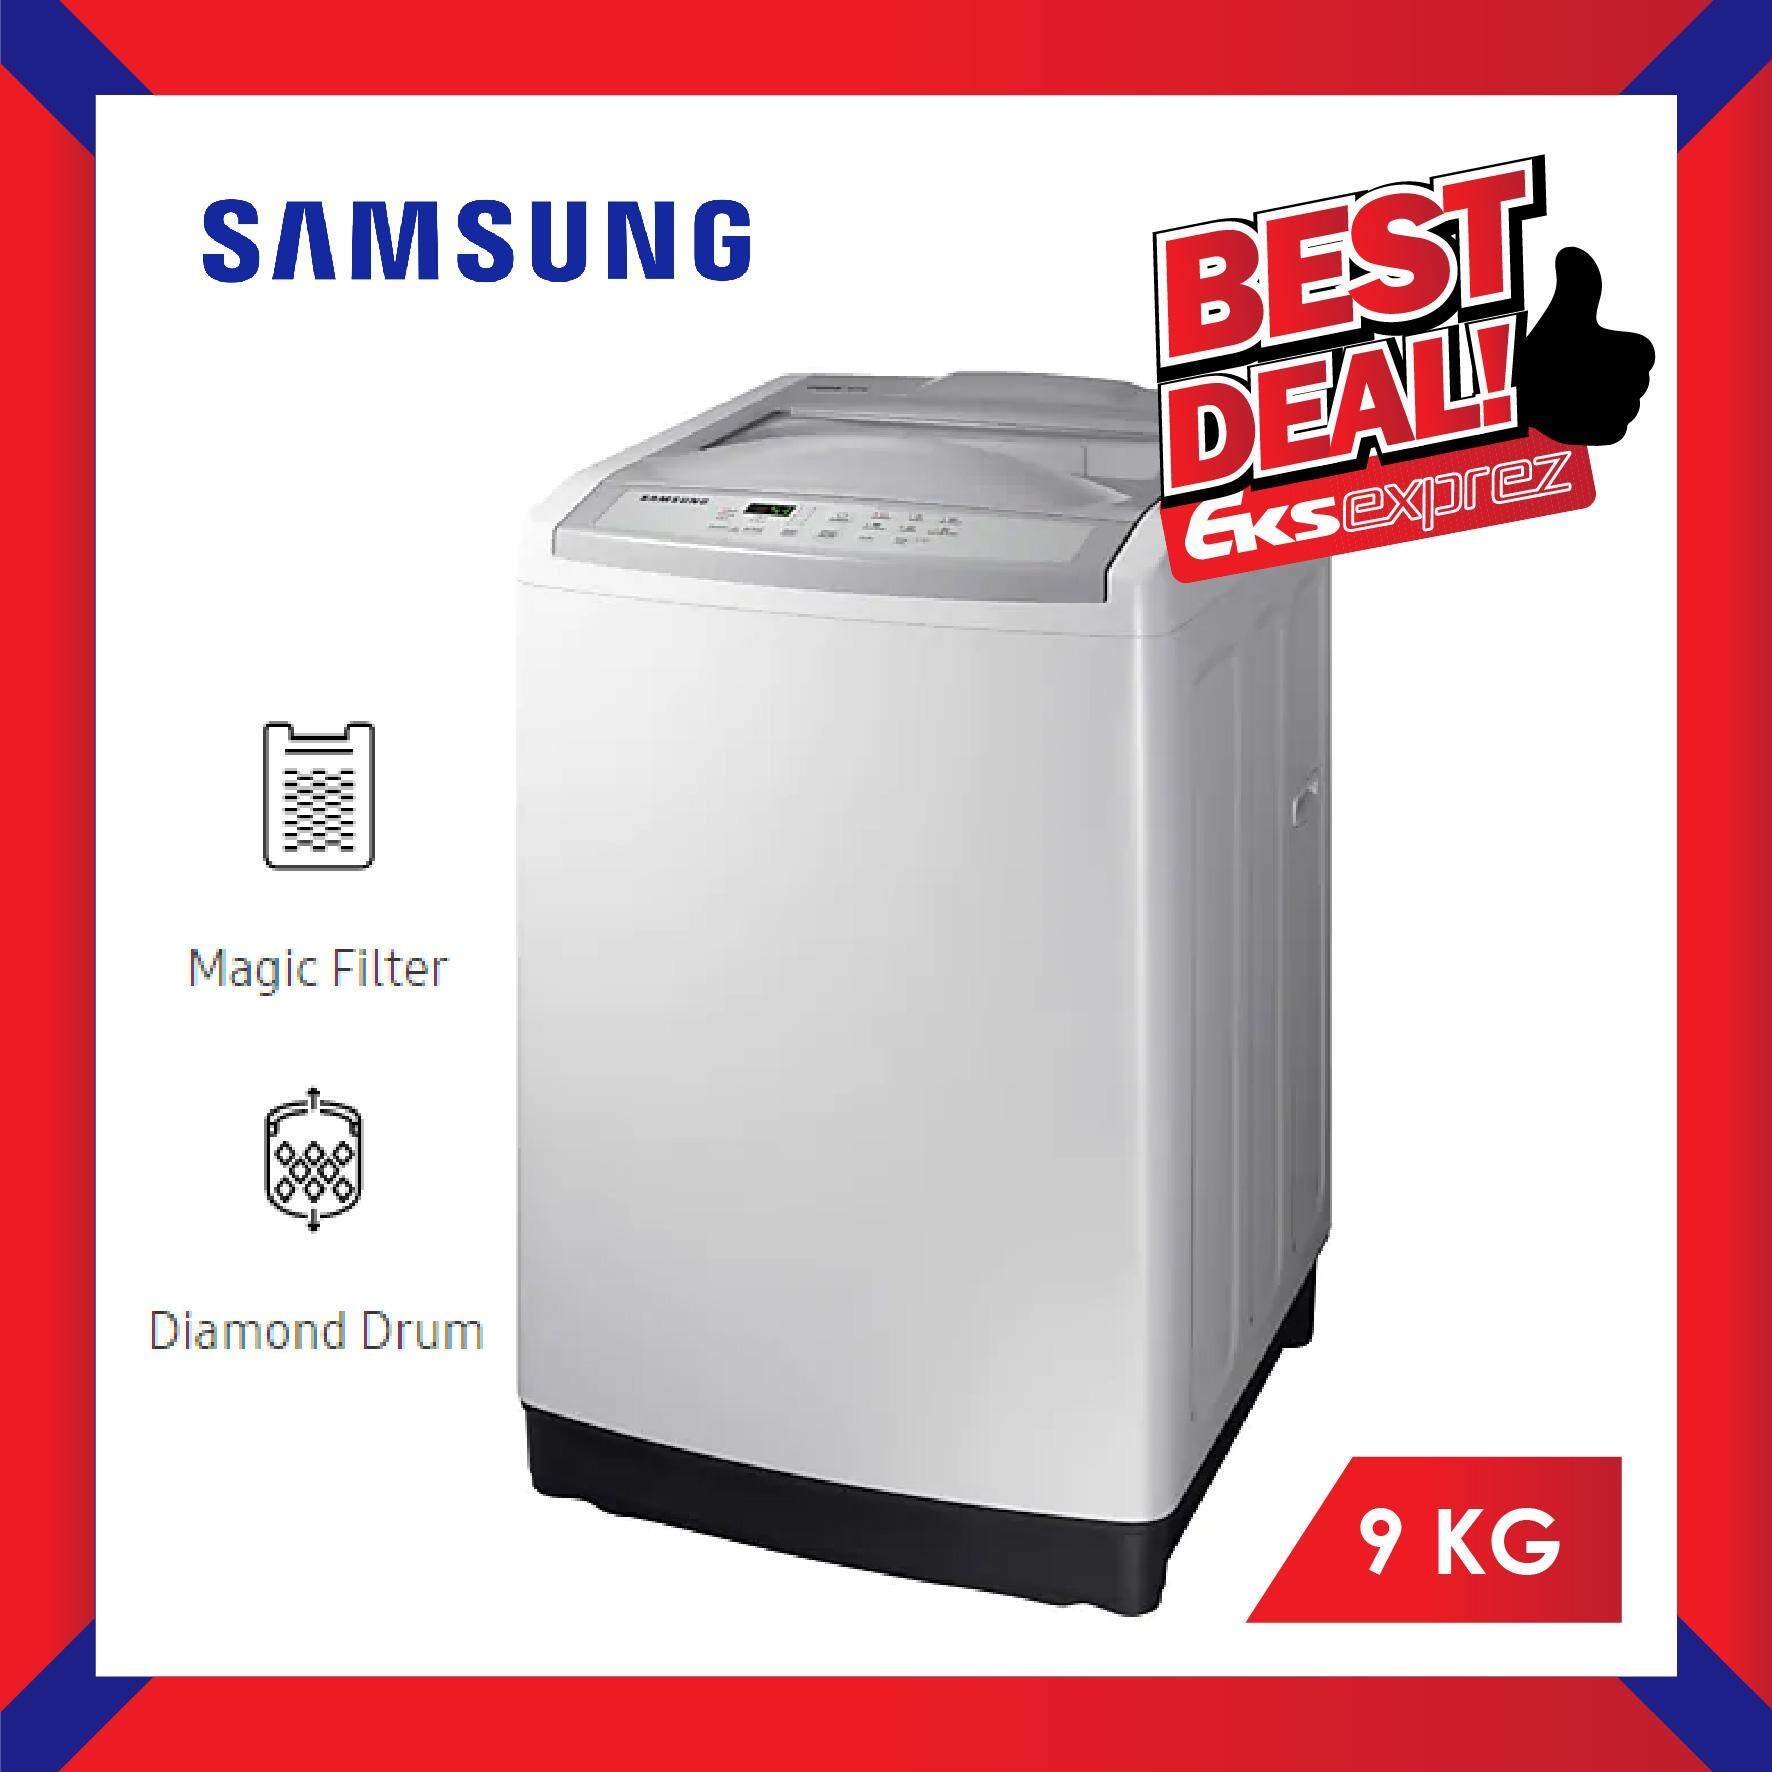 Samsung WA90M5120SG/FQ 9KG Top Load Fully Automatic Washing Machine/Washer with Wobble Technology